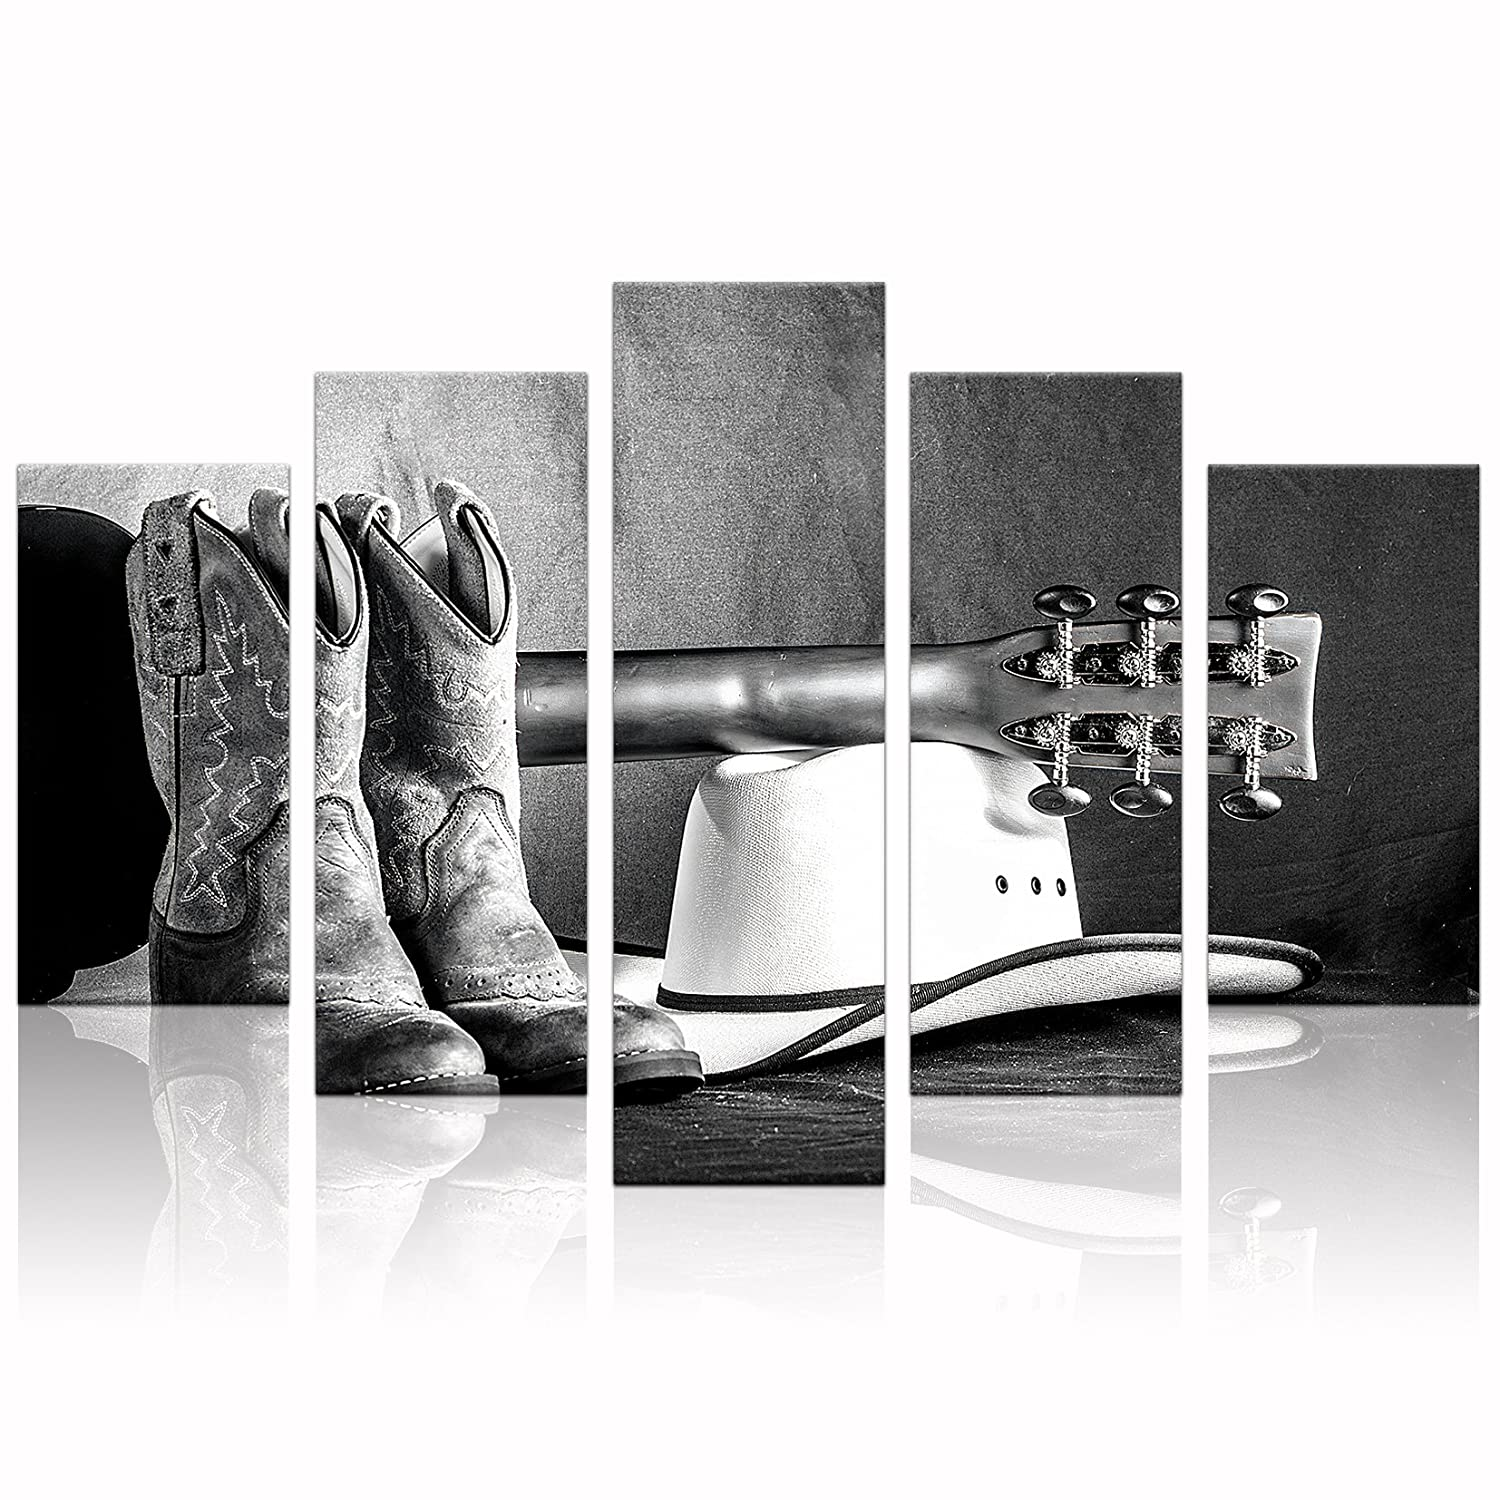 Klvos large black white wall art abstract cowboy boots hat an acoustic guitar music canvas prints art still life home decor framed living room ready to